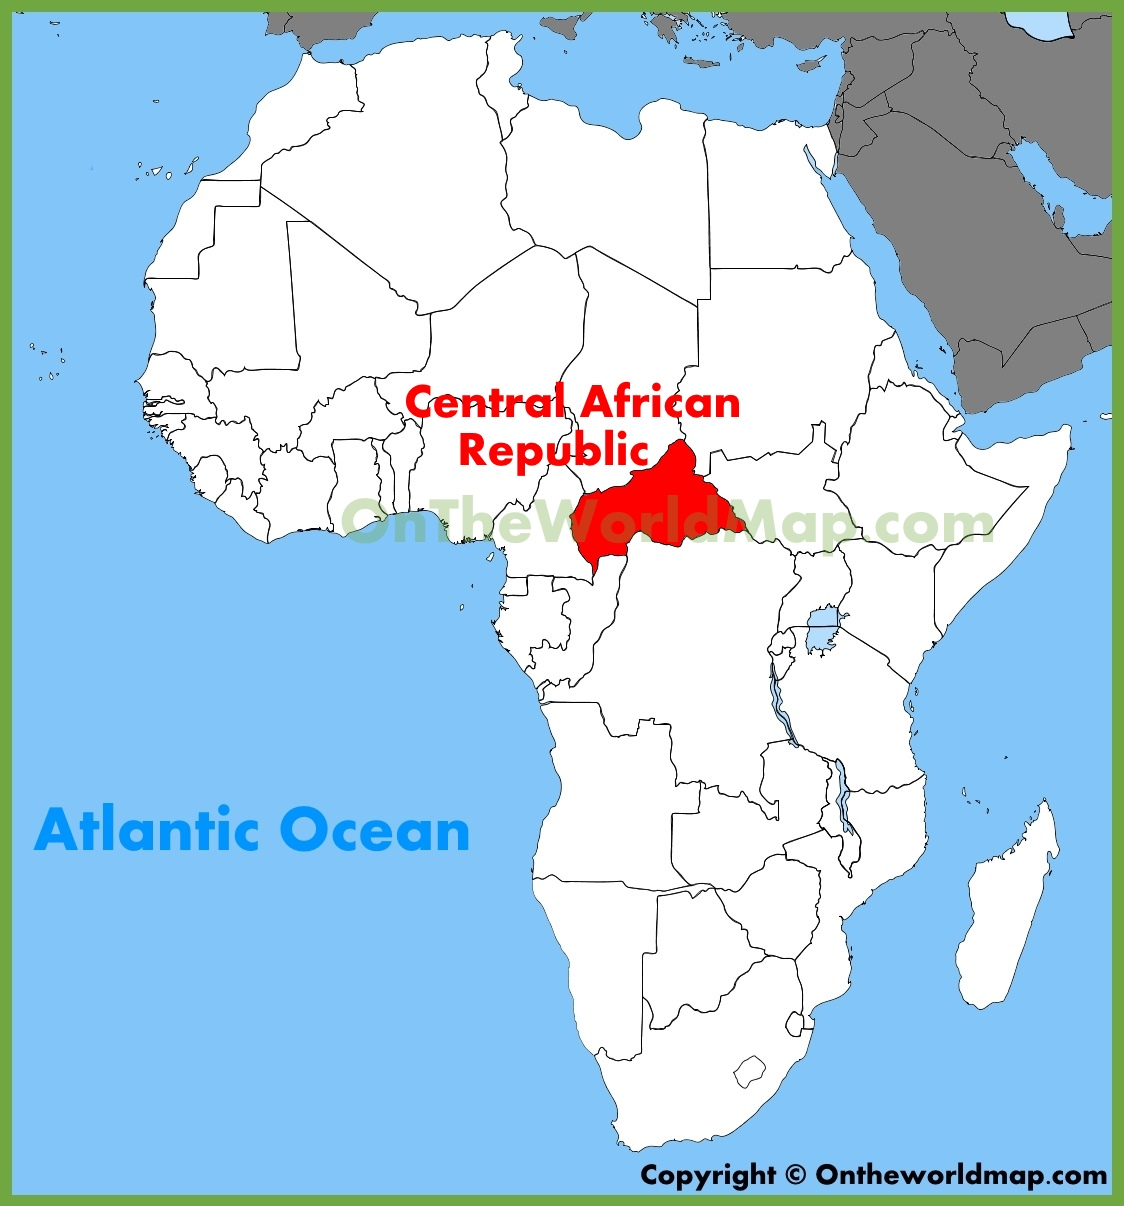 Africa Map Central African Republic Central African Republic location on the Africa map